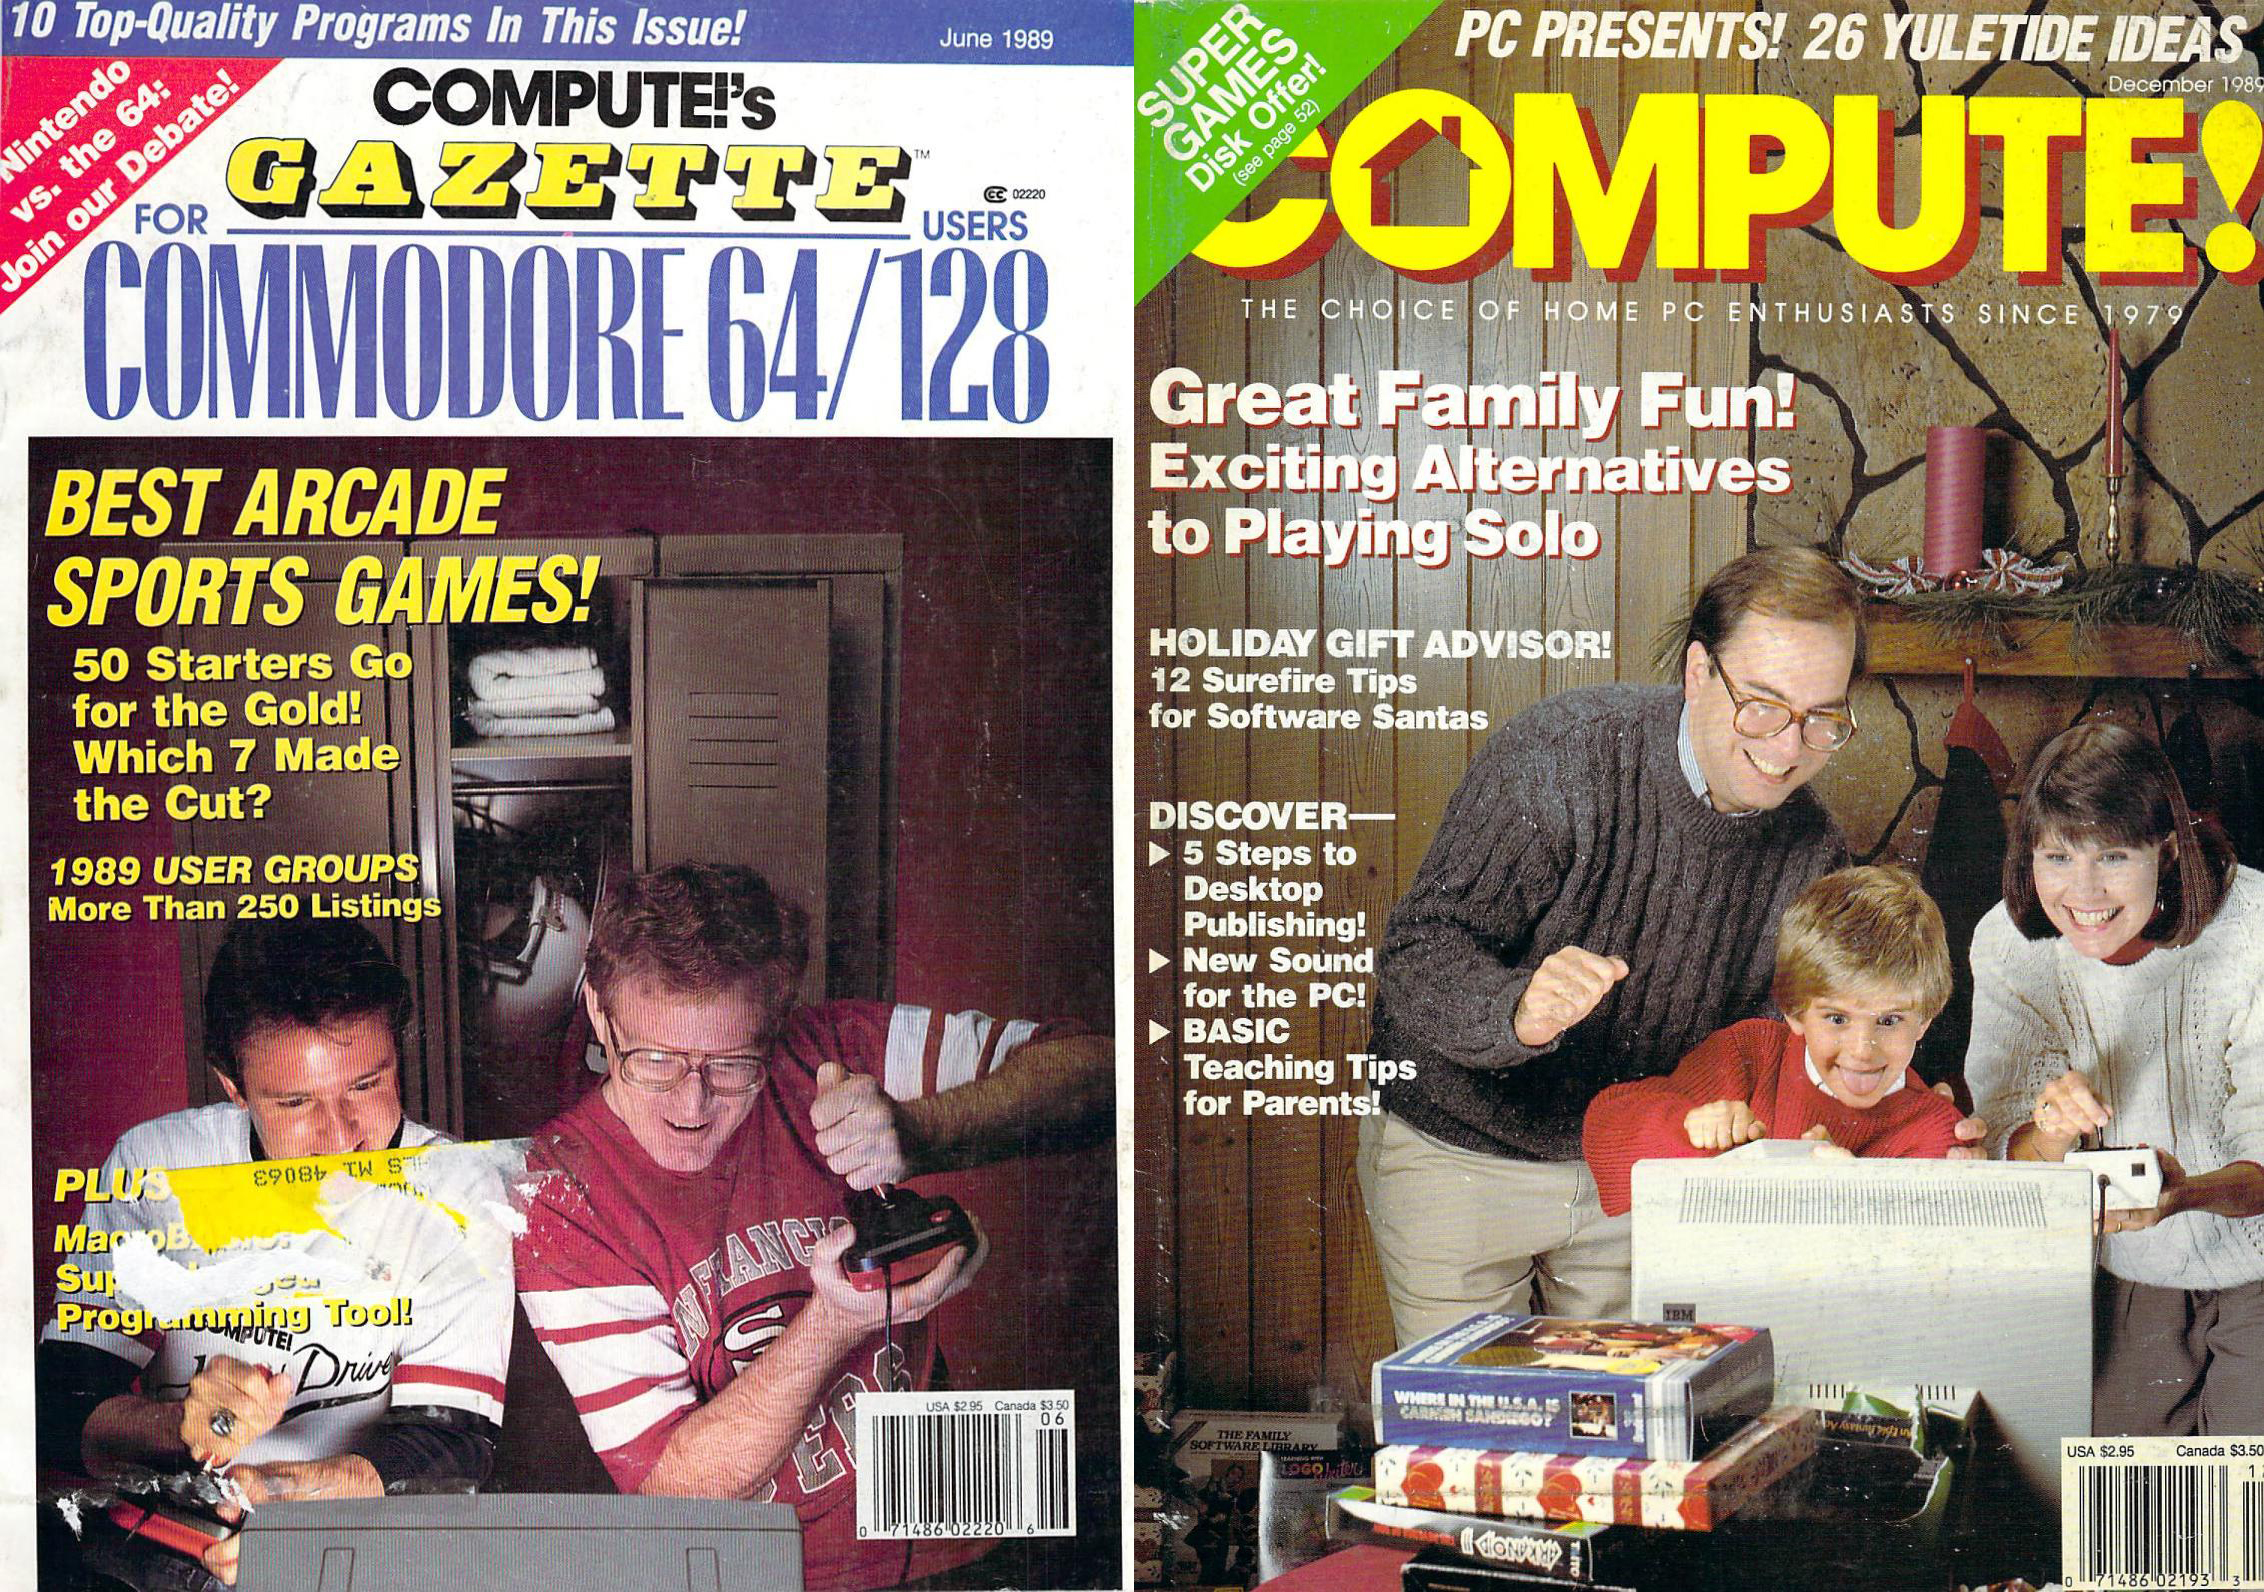 (Left) Computer Gazette - June 1989, (Right) Compute! - Dec. 1989